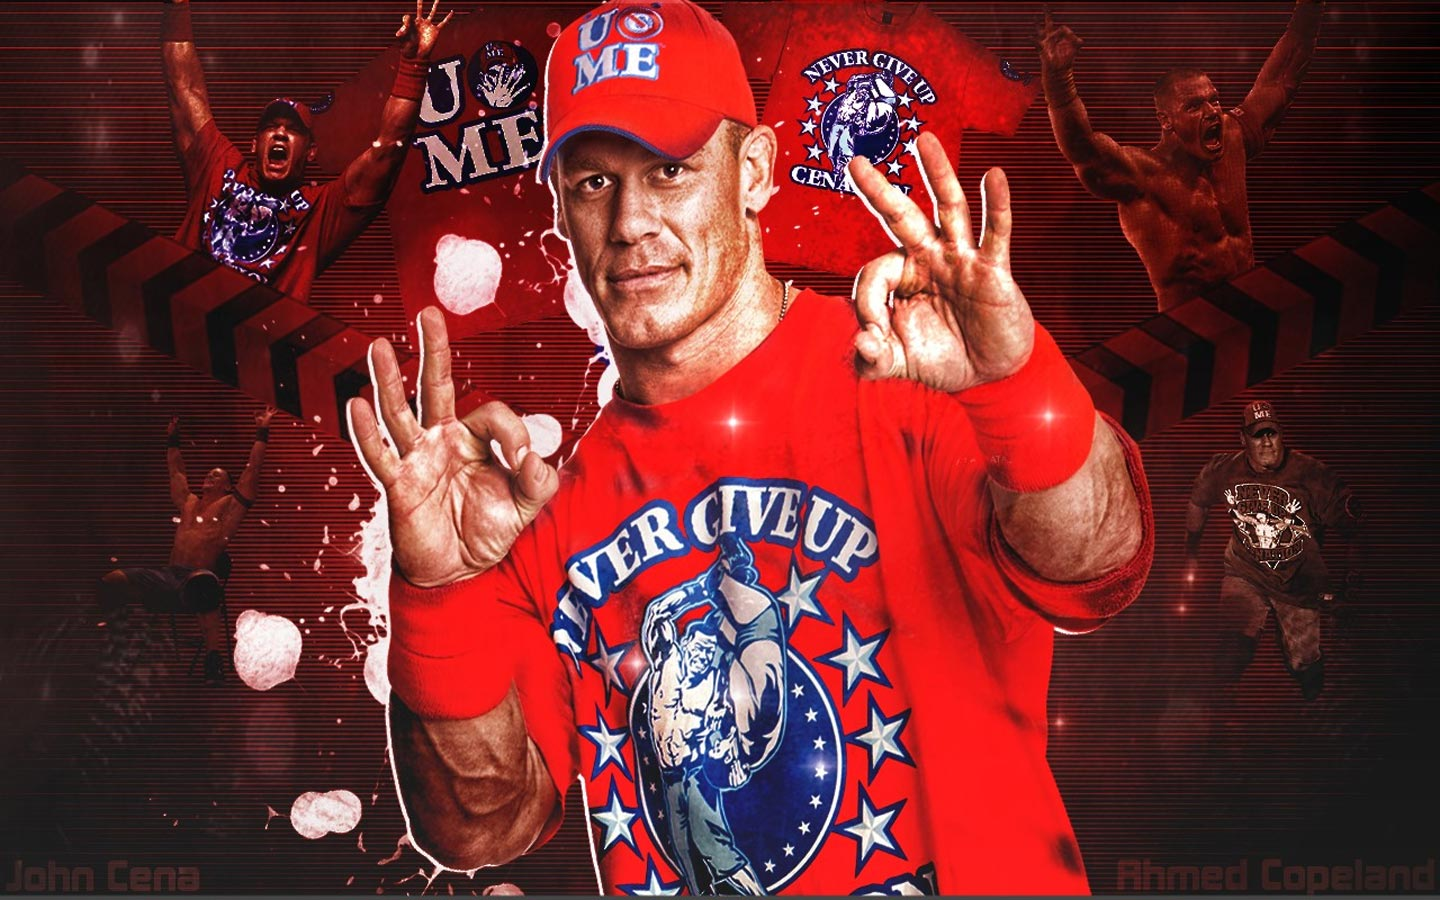 john cena wallpapers wwe | high definitions wallpapers